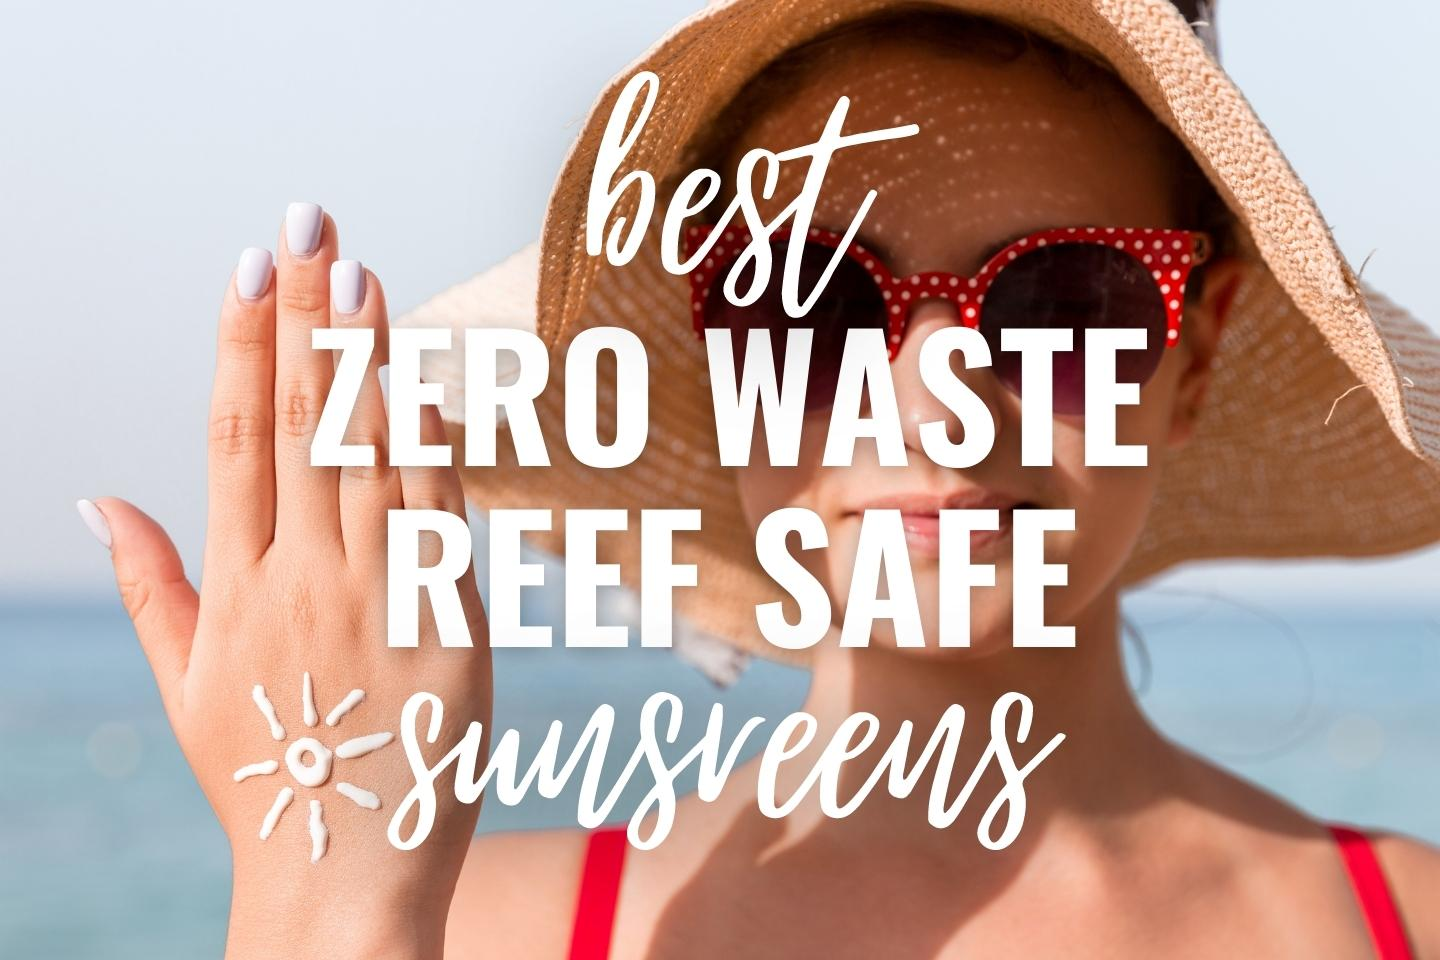 12 Zero Waste Reef Safe Sunscreens That Are Not Toxic to The Ocean